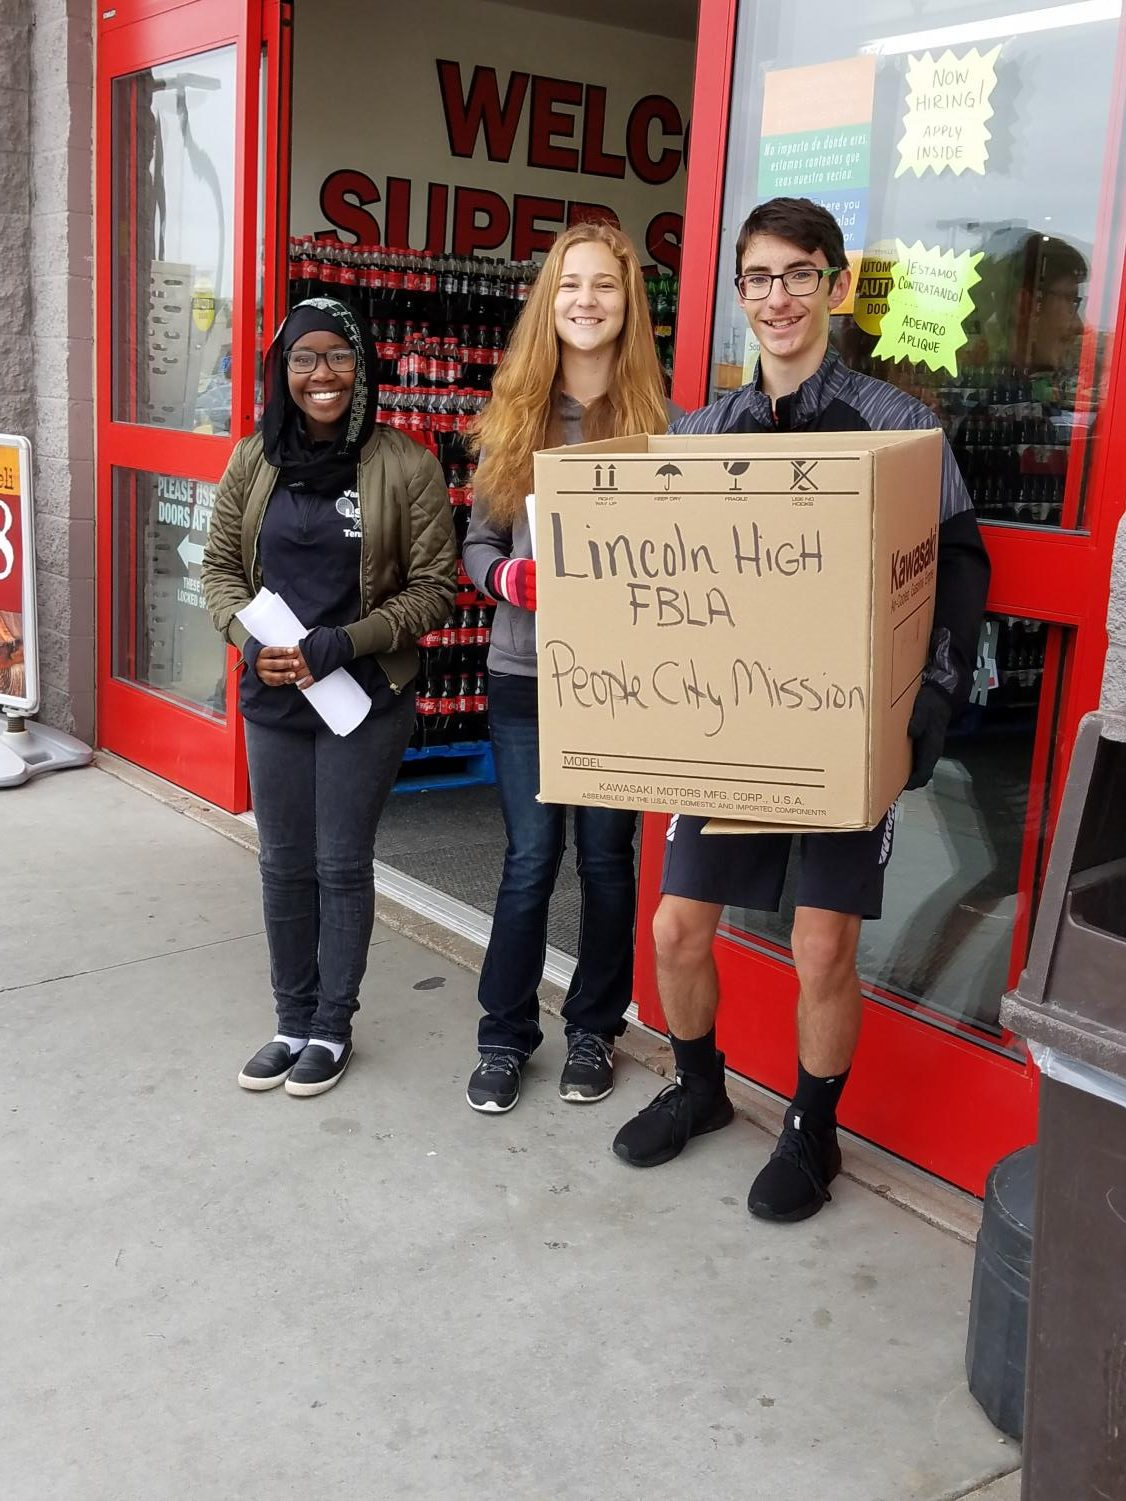 (Left to Right) Meissa Hassan (10), Aspen Kenley (9), and Ethan Fleming (9) pose with the boxes of food they collected at the 27th and Cornhusker Super Saver for the FBLA Food Blitz fundraiser for the Lincoln People's City Mission on Oct. 6, 2018. Photo courtesy of Bonnie Anderson